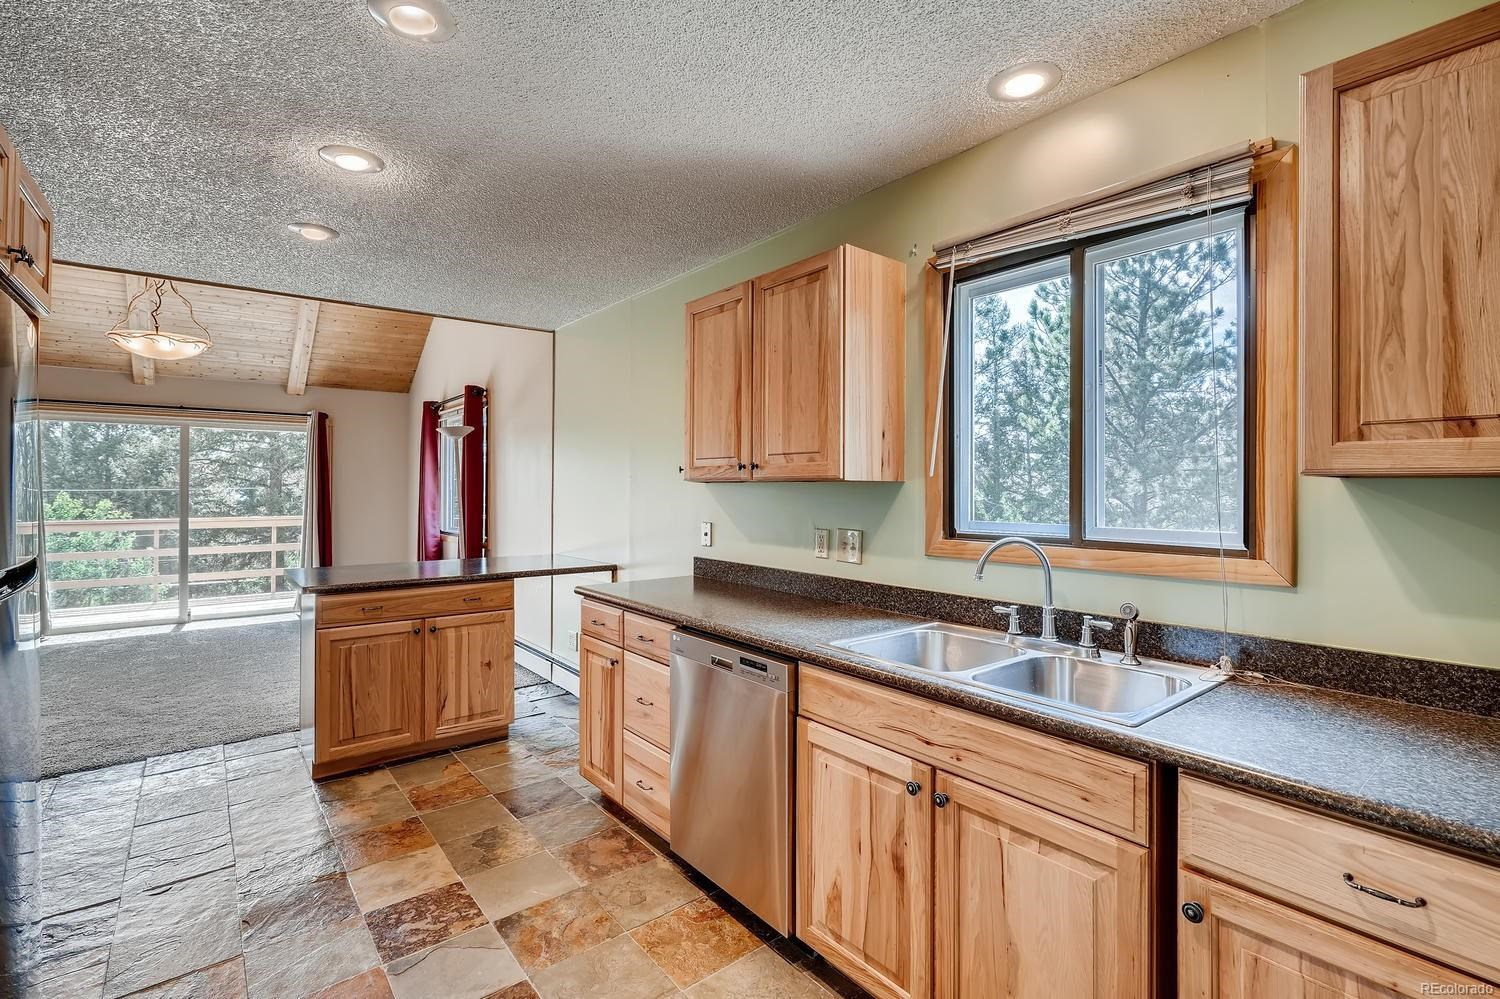 MLS# 8376760 - 6 - 30915 Walter Drive, Conifer, CO 80433